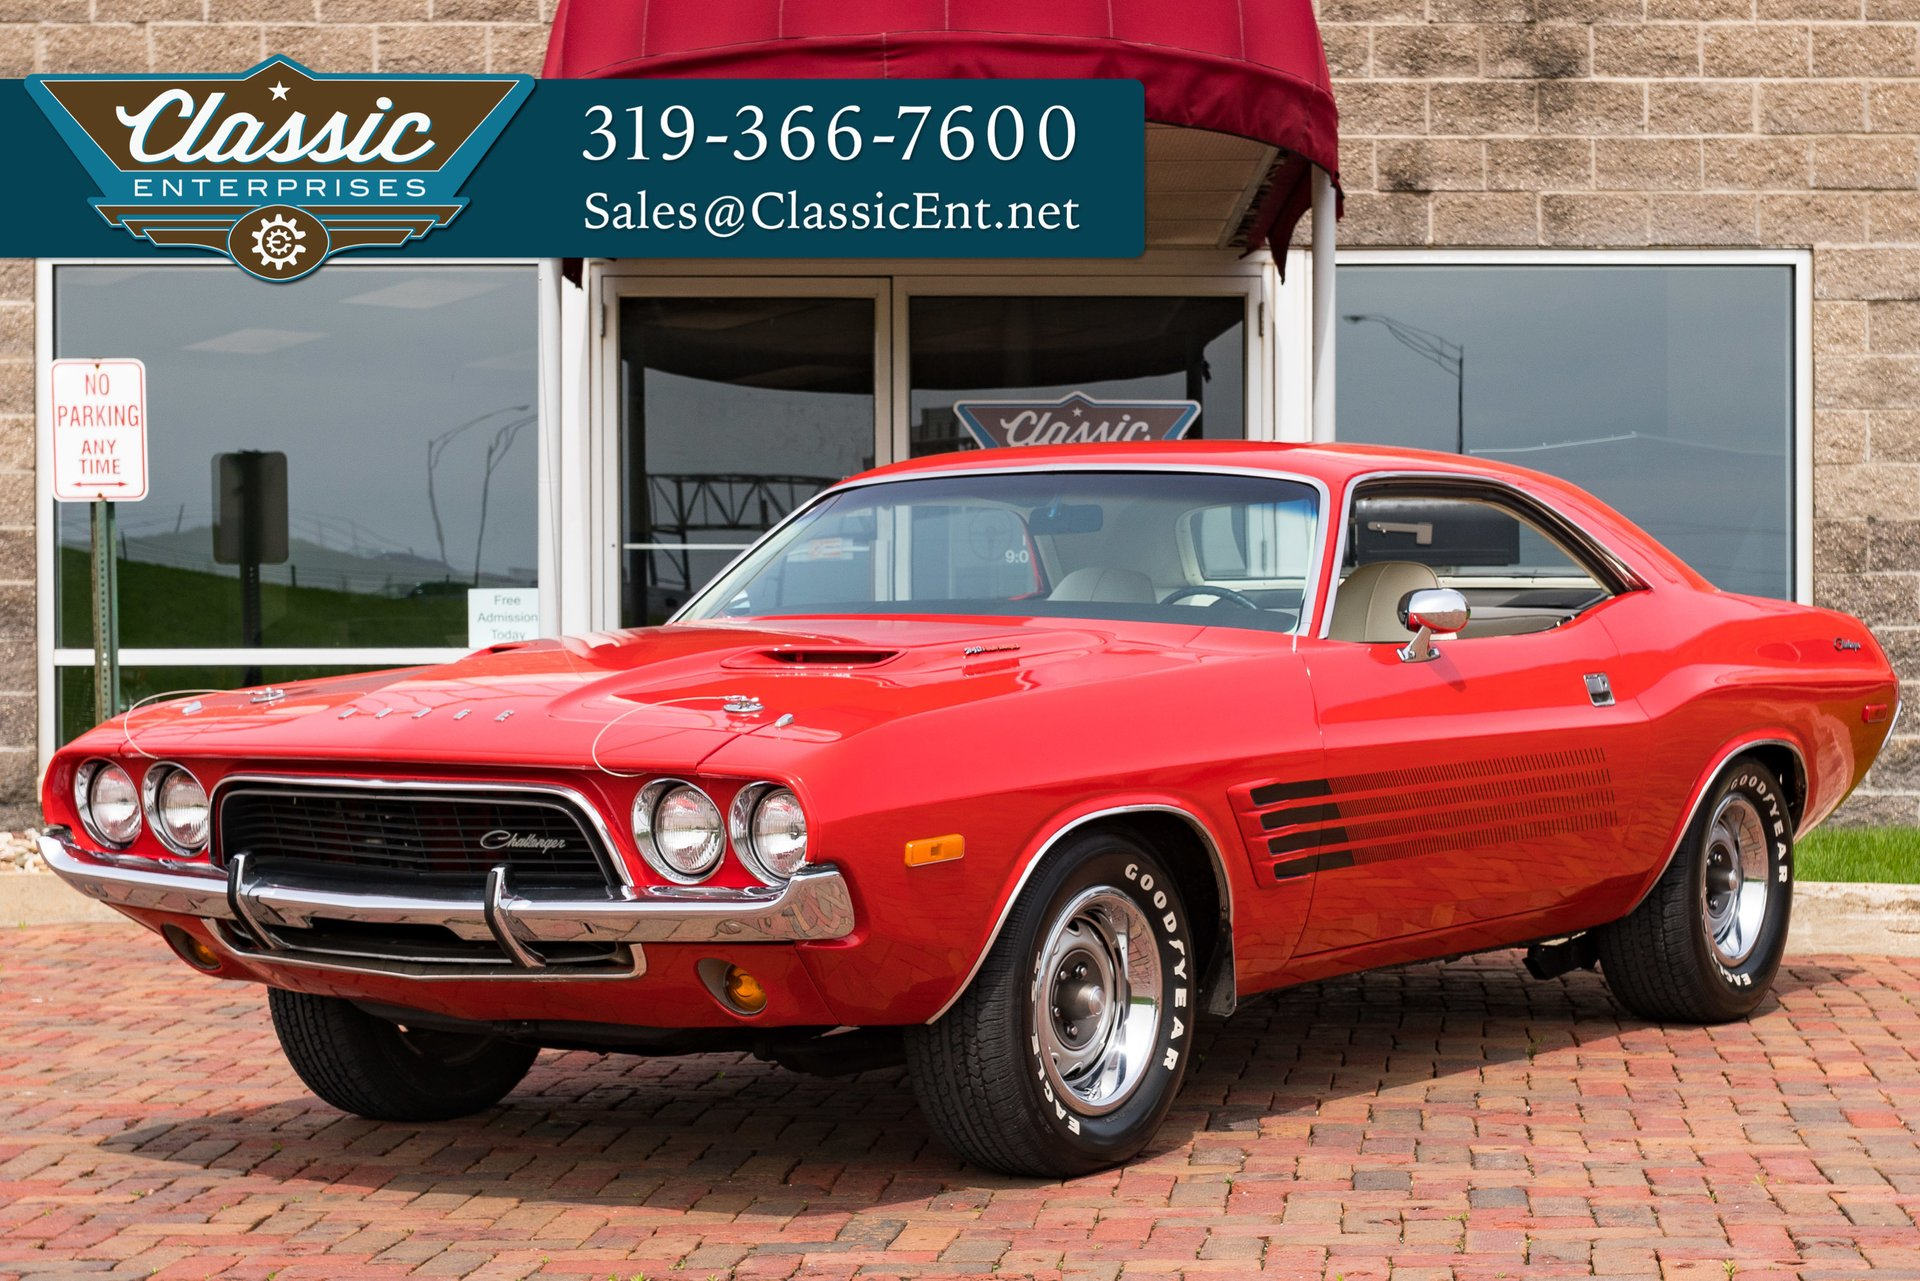 1972 Dodge Challenger >> 1972 Dodge Challenger Duffy S Classic Cars